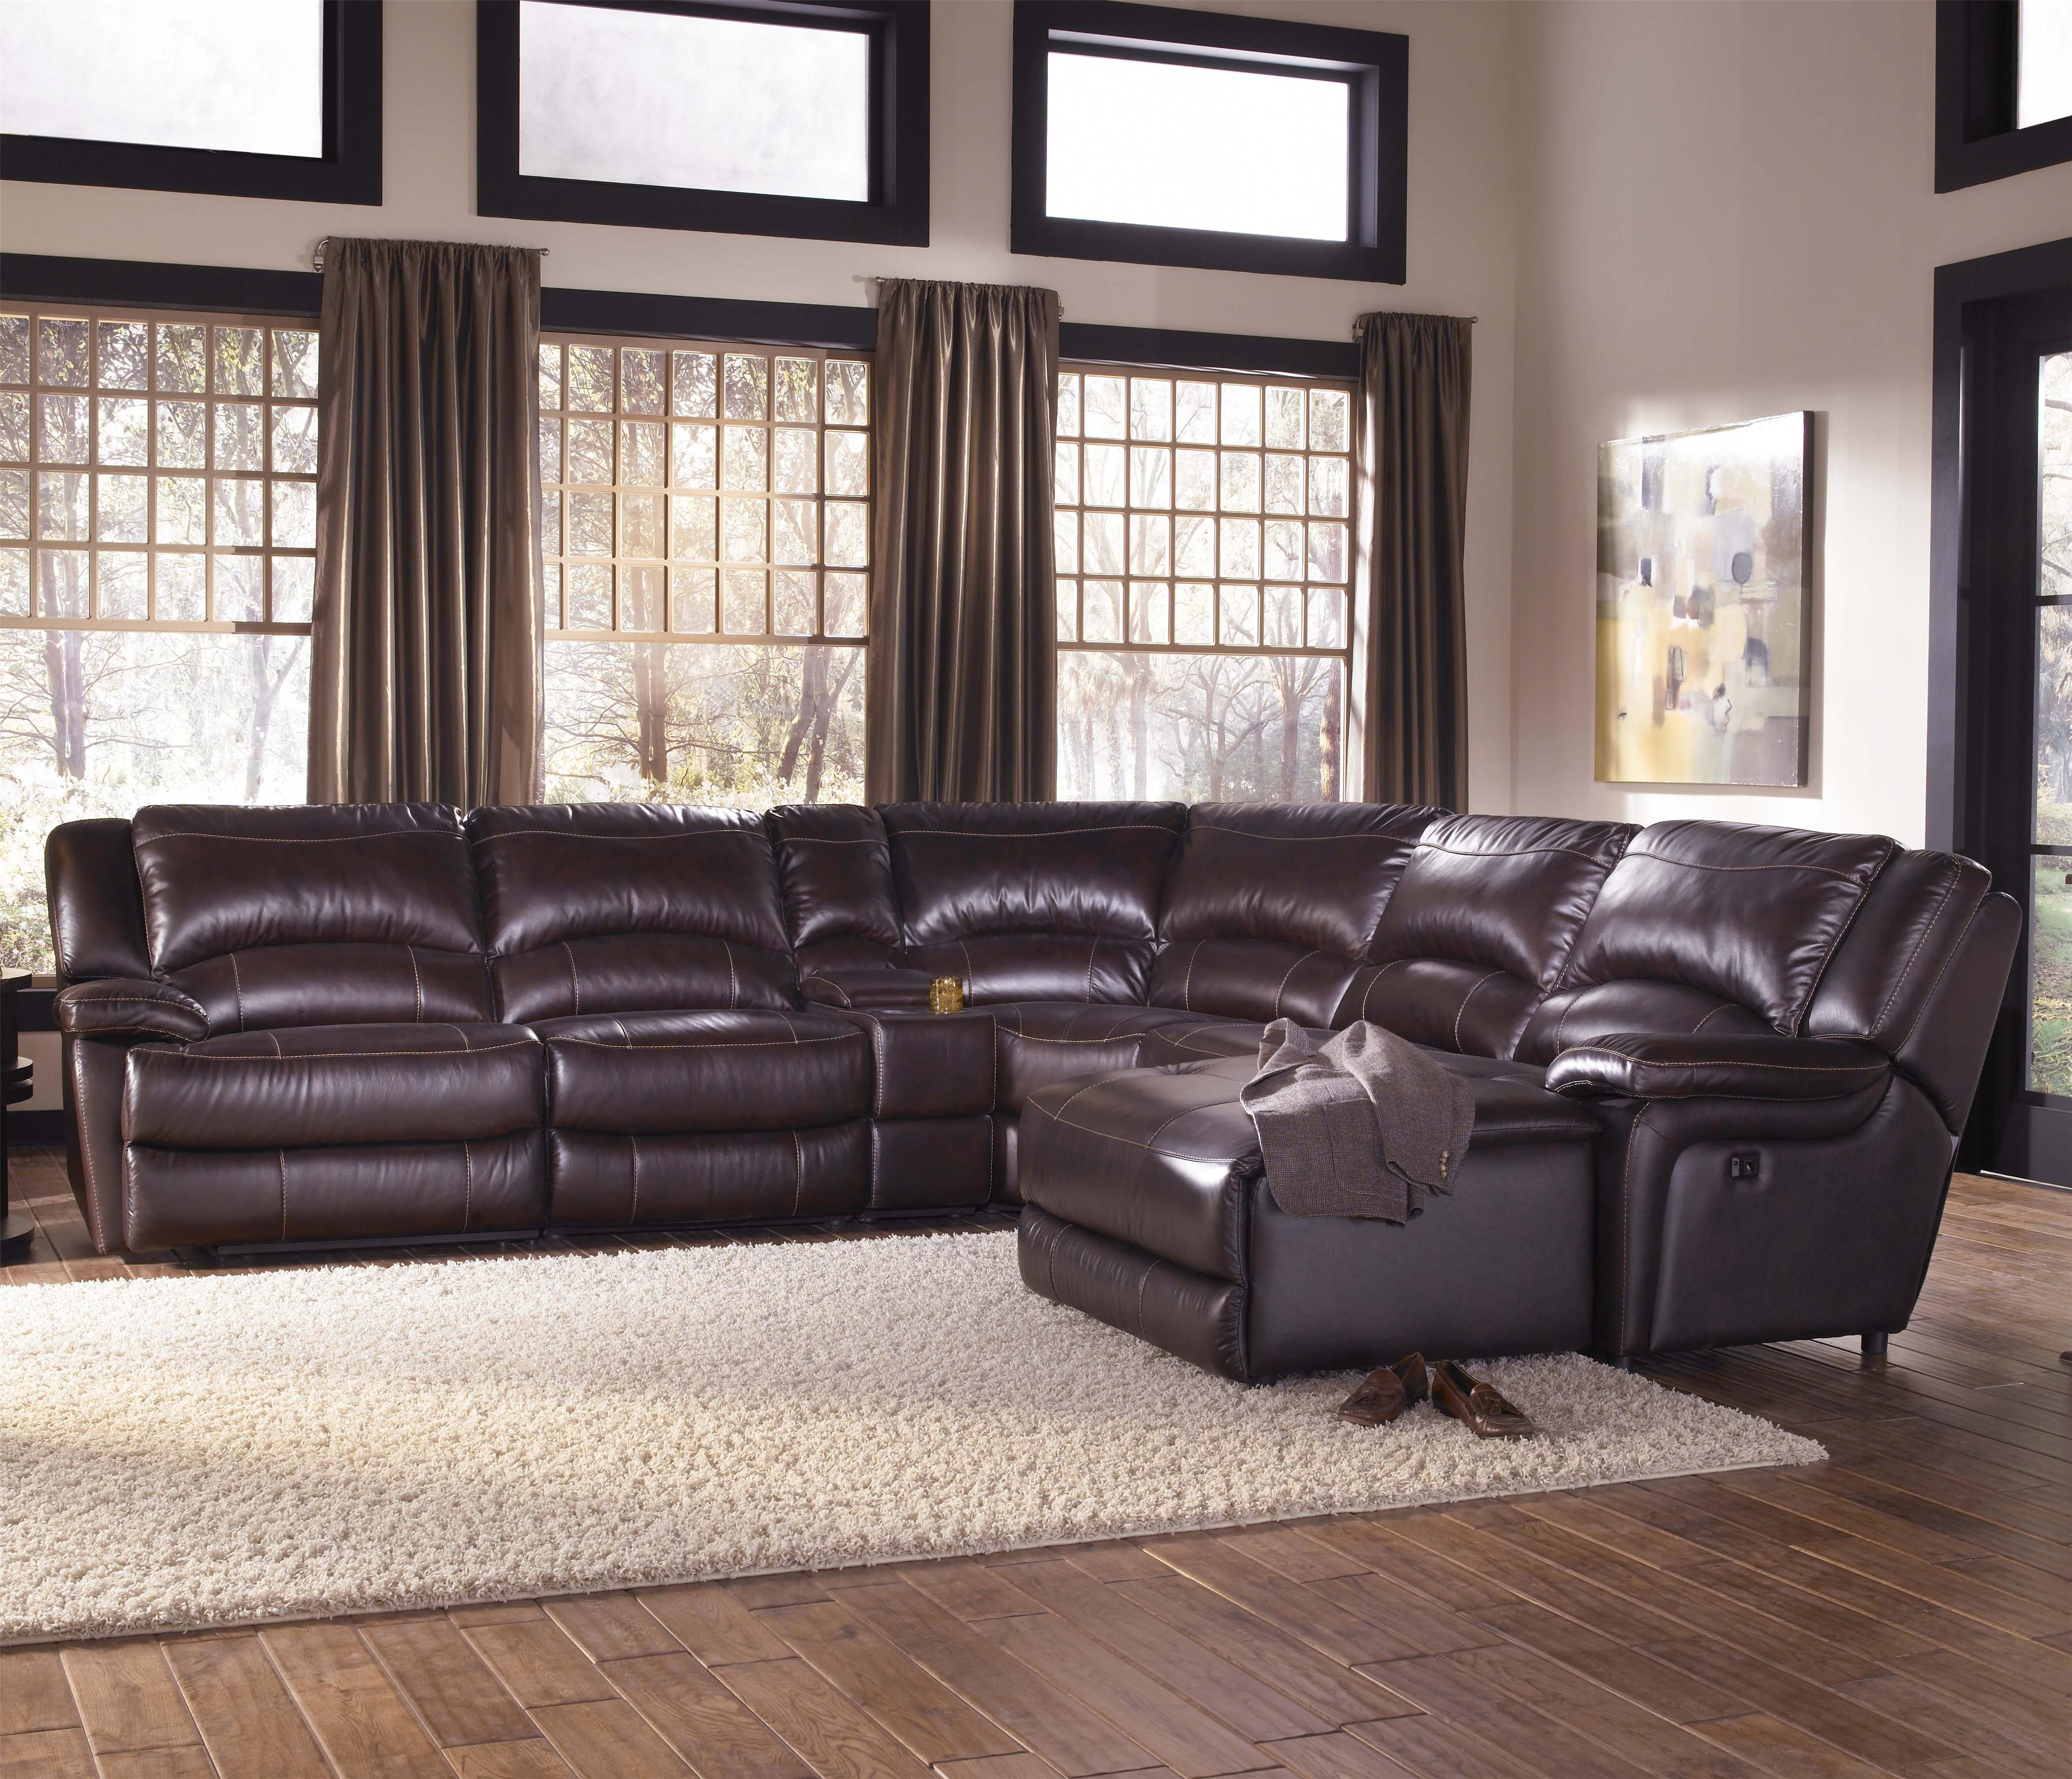 Htl reclining leather sofas refil sofa for Htl sectional leather sofa